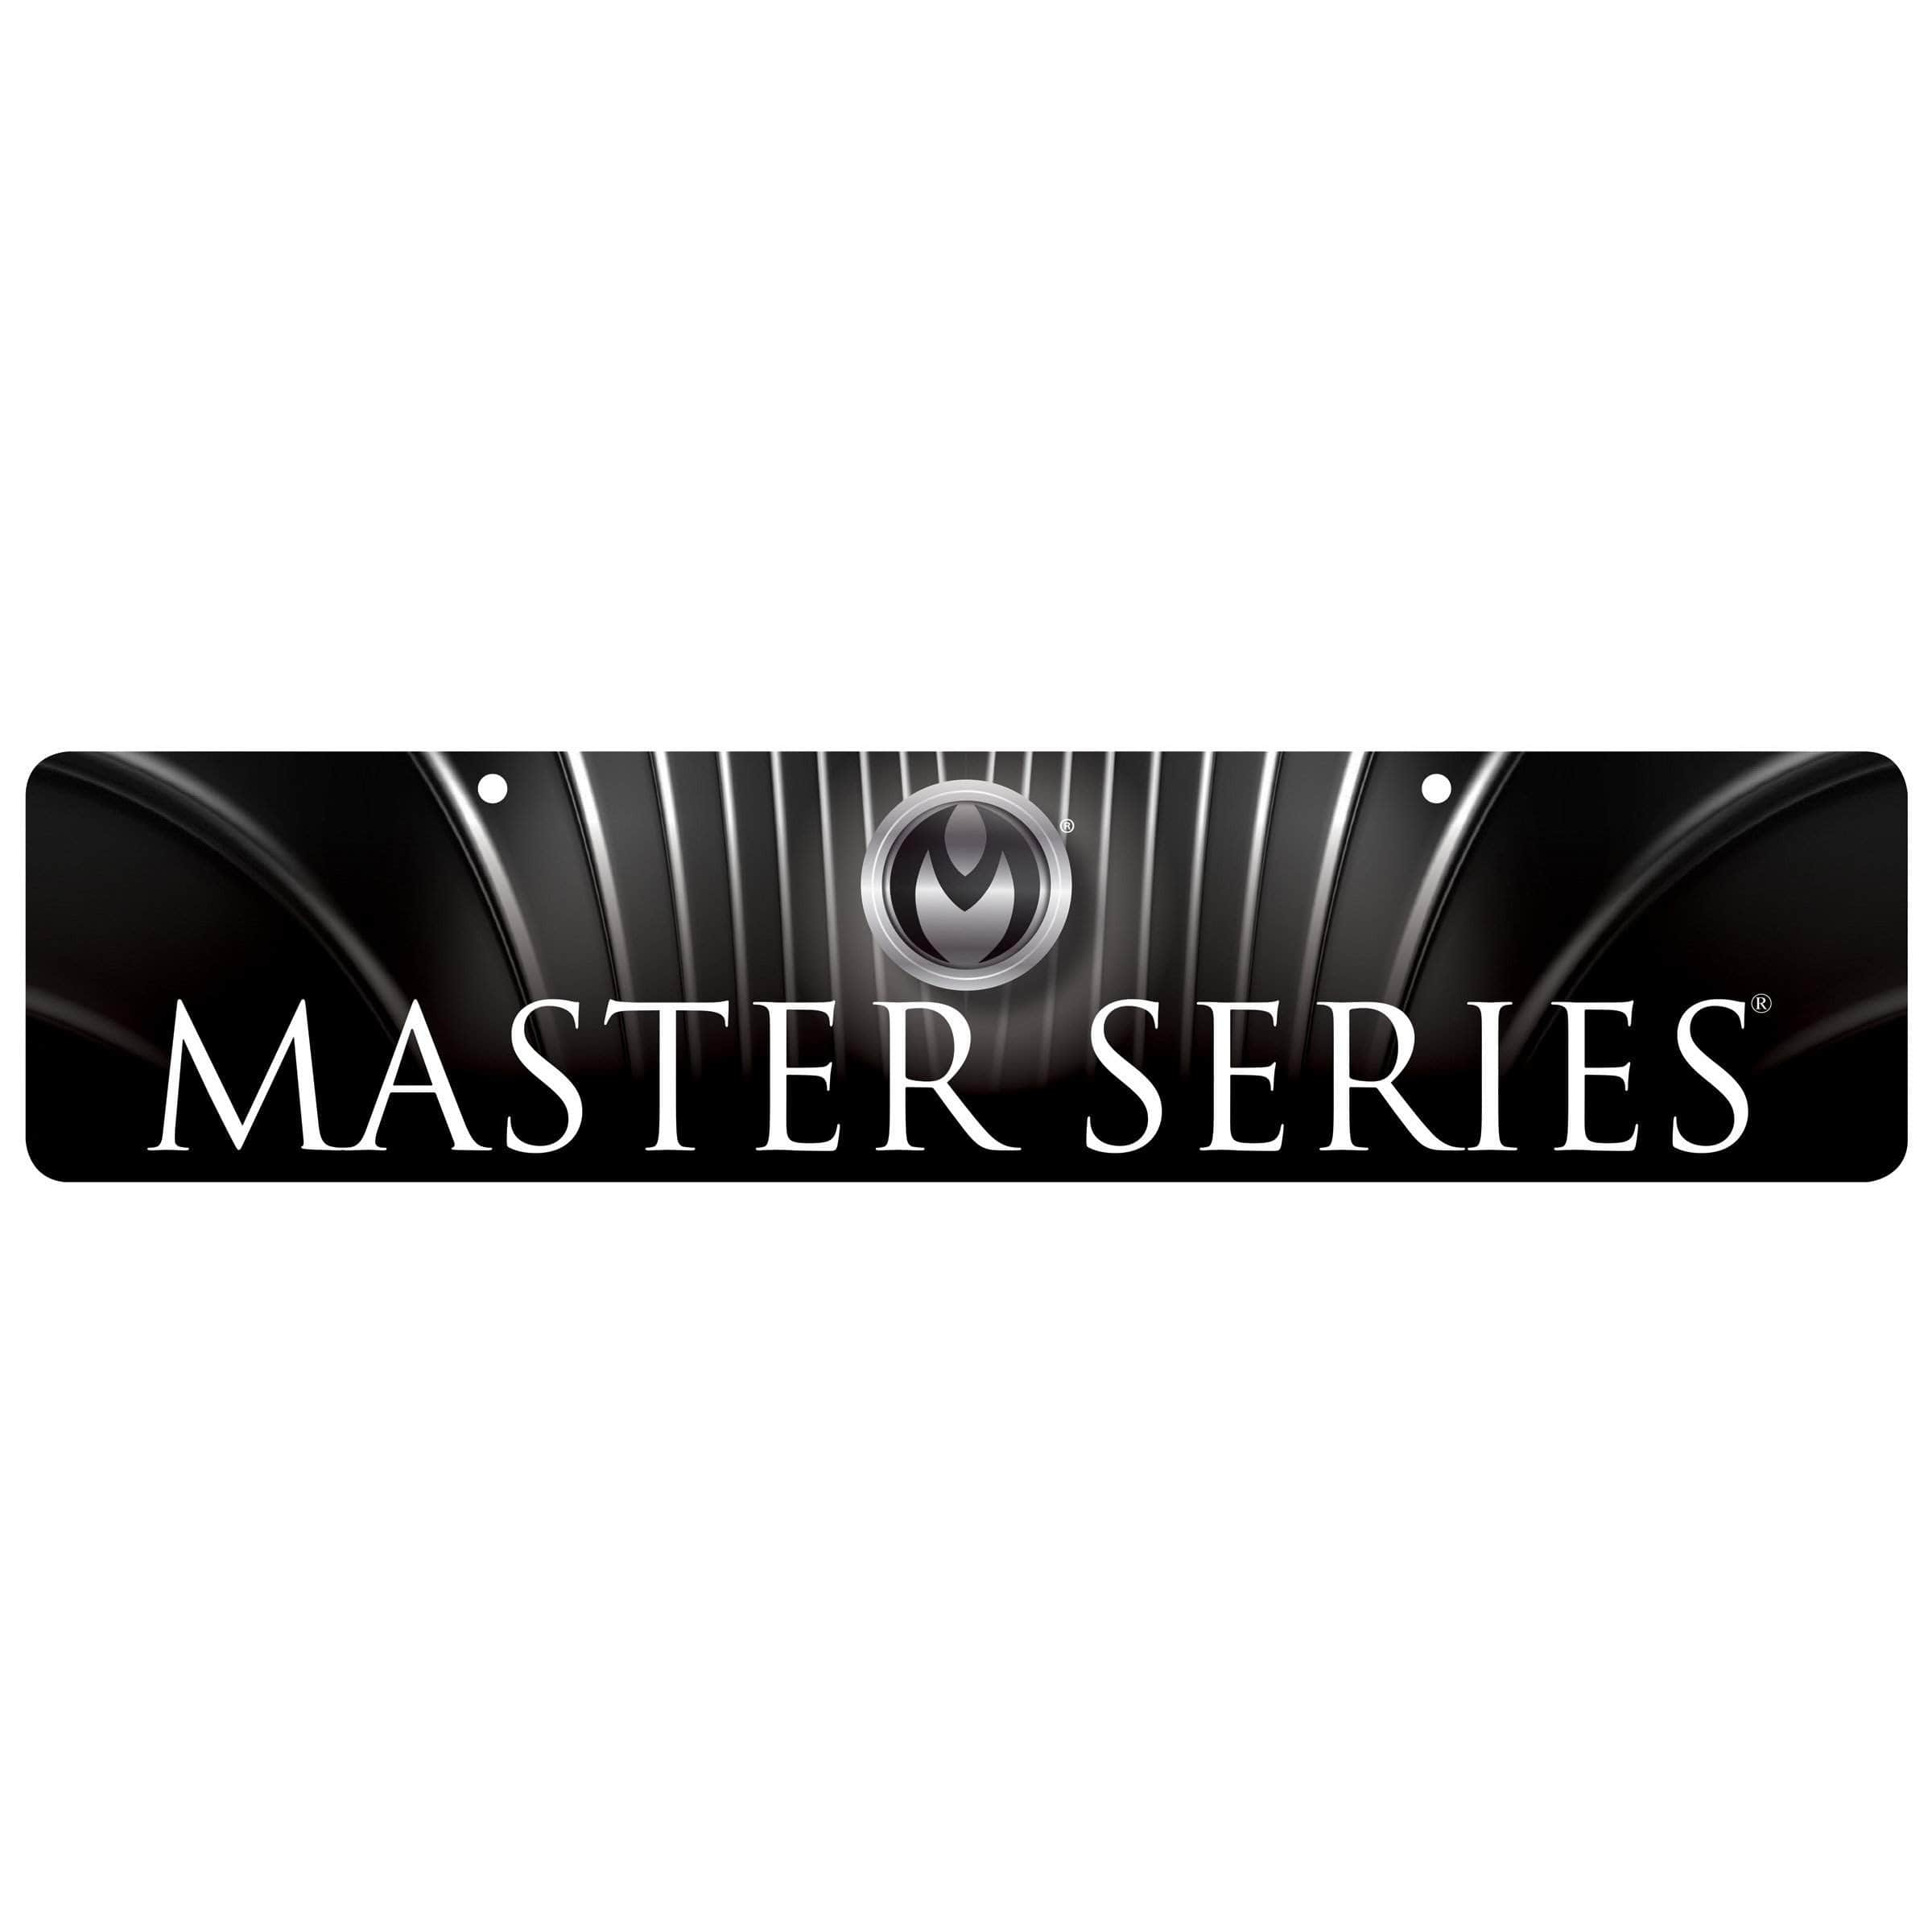 Master Series Display Sign